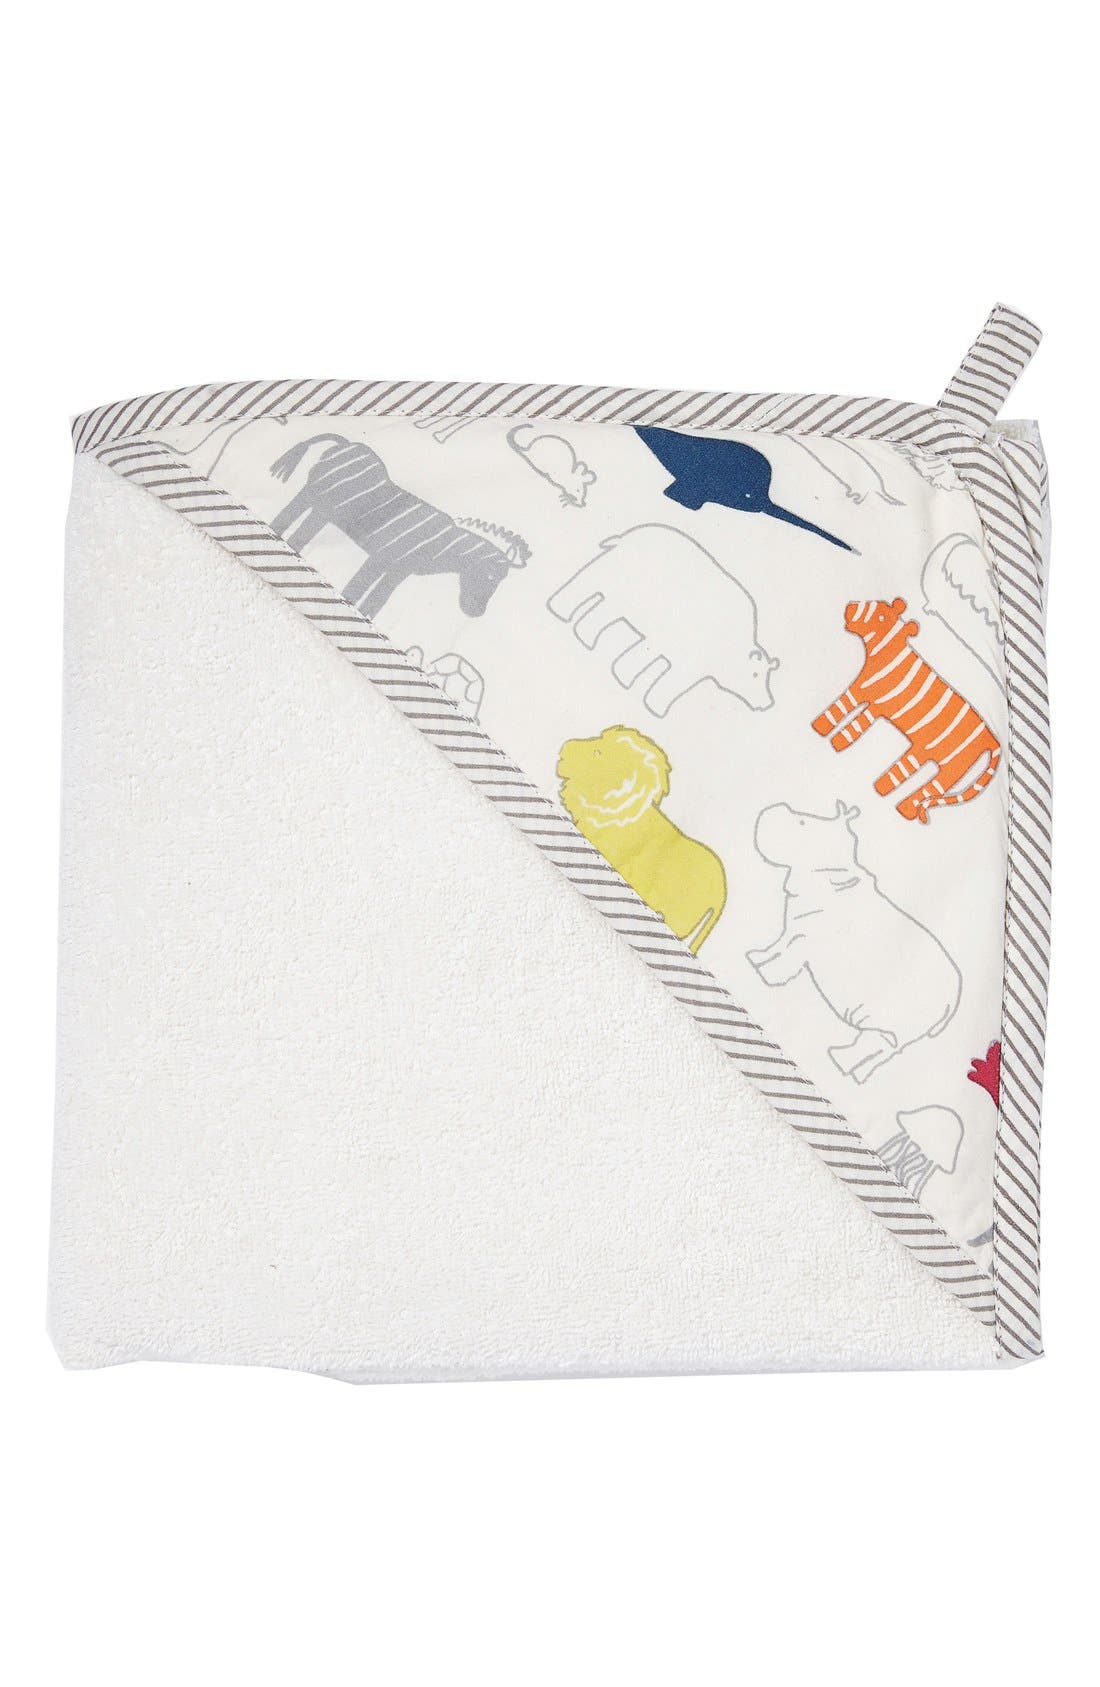 Print Hooded Towel,                             Main thumbnail 1, color,                             NOAHS ARK